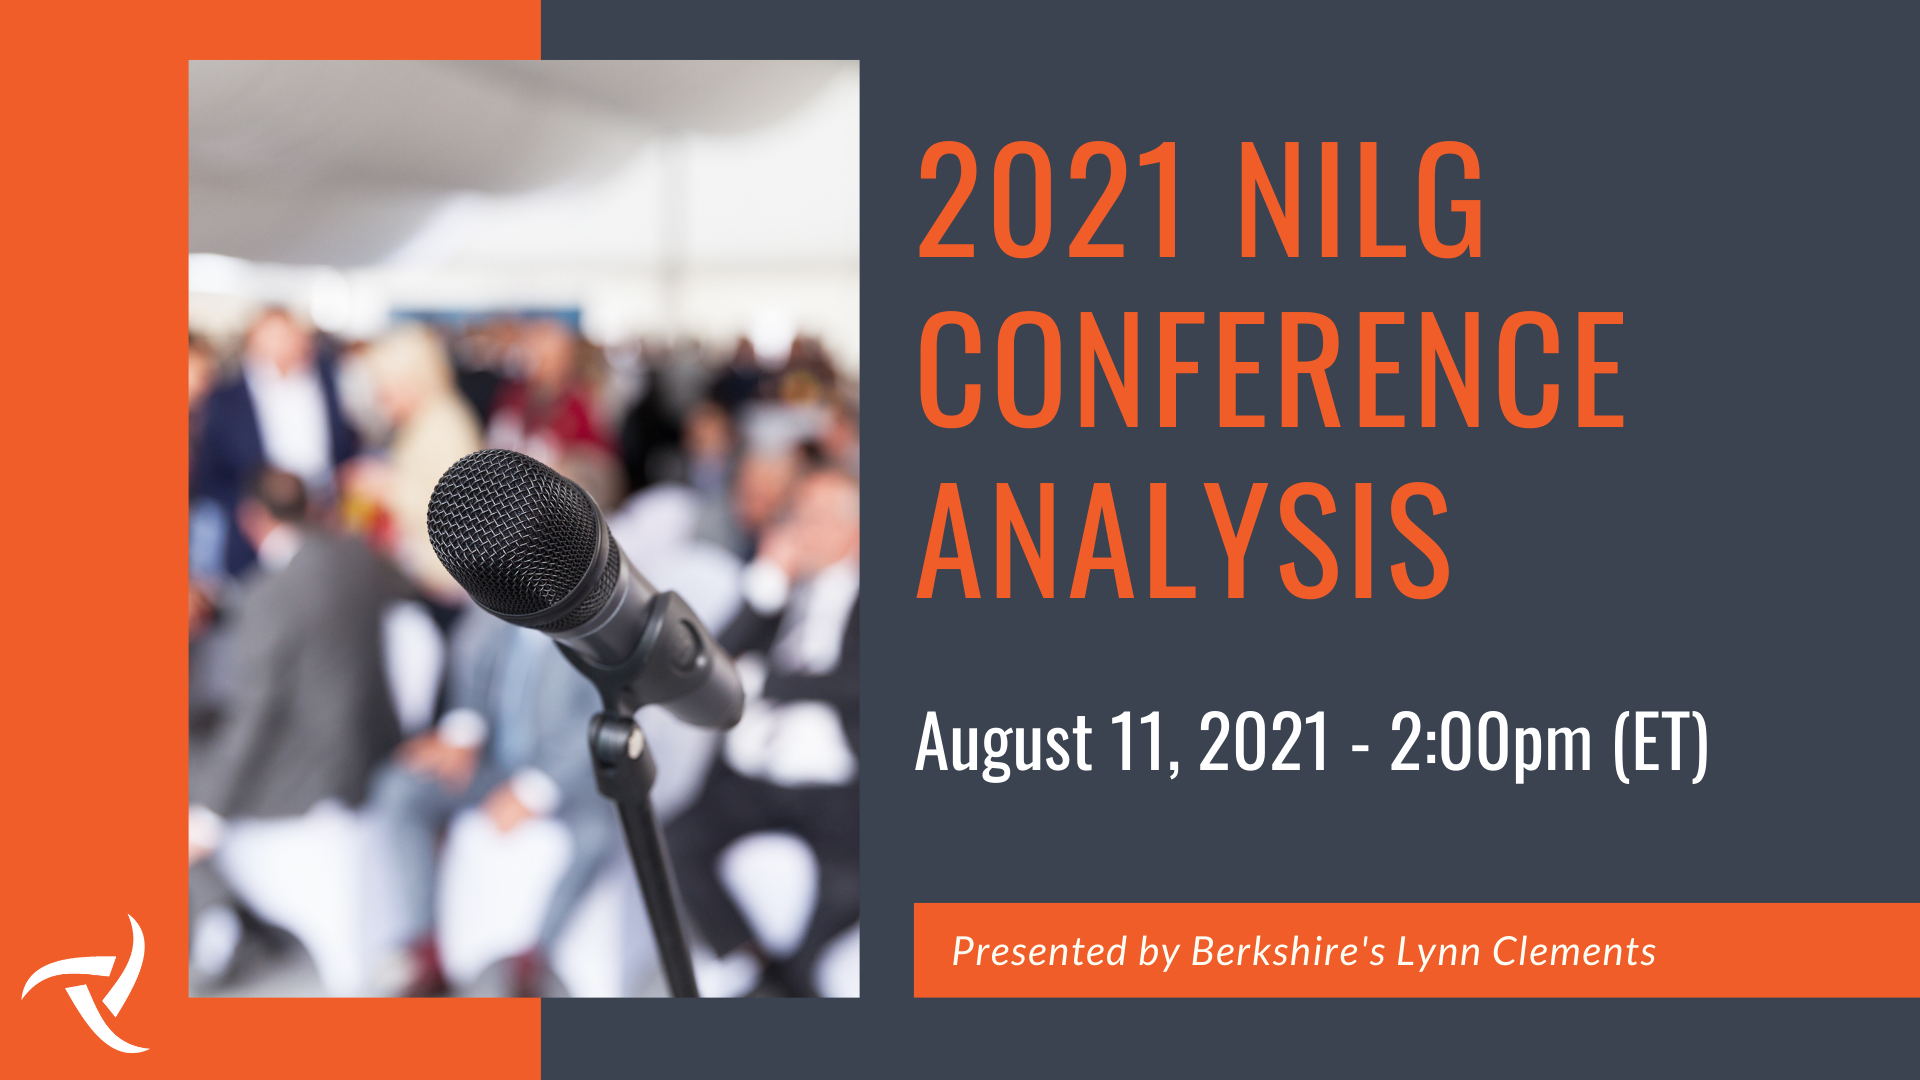 2021 NILG Conference Analysis - August 2021 Webinar - Email Banner Image